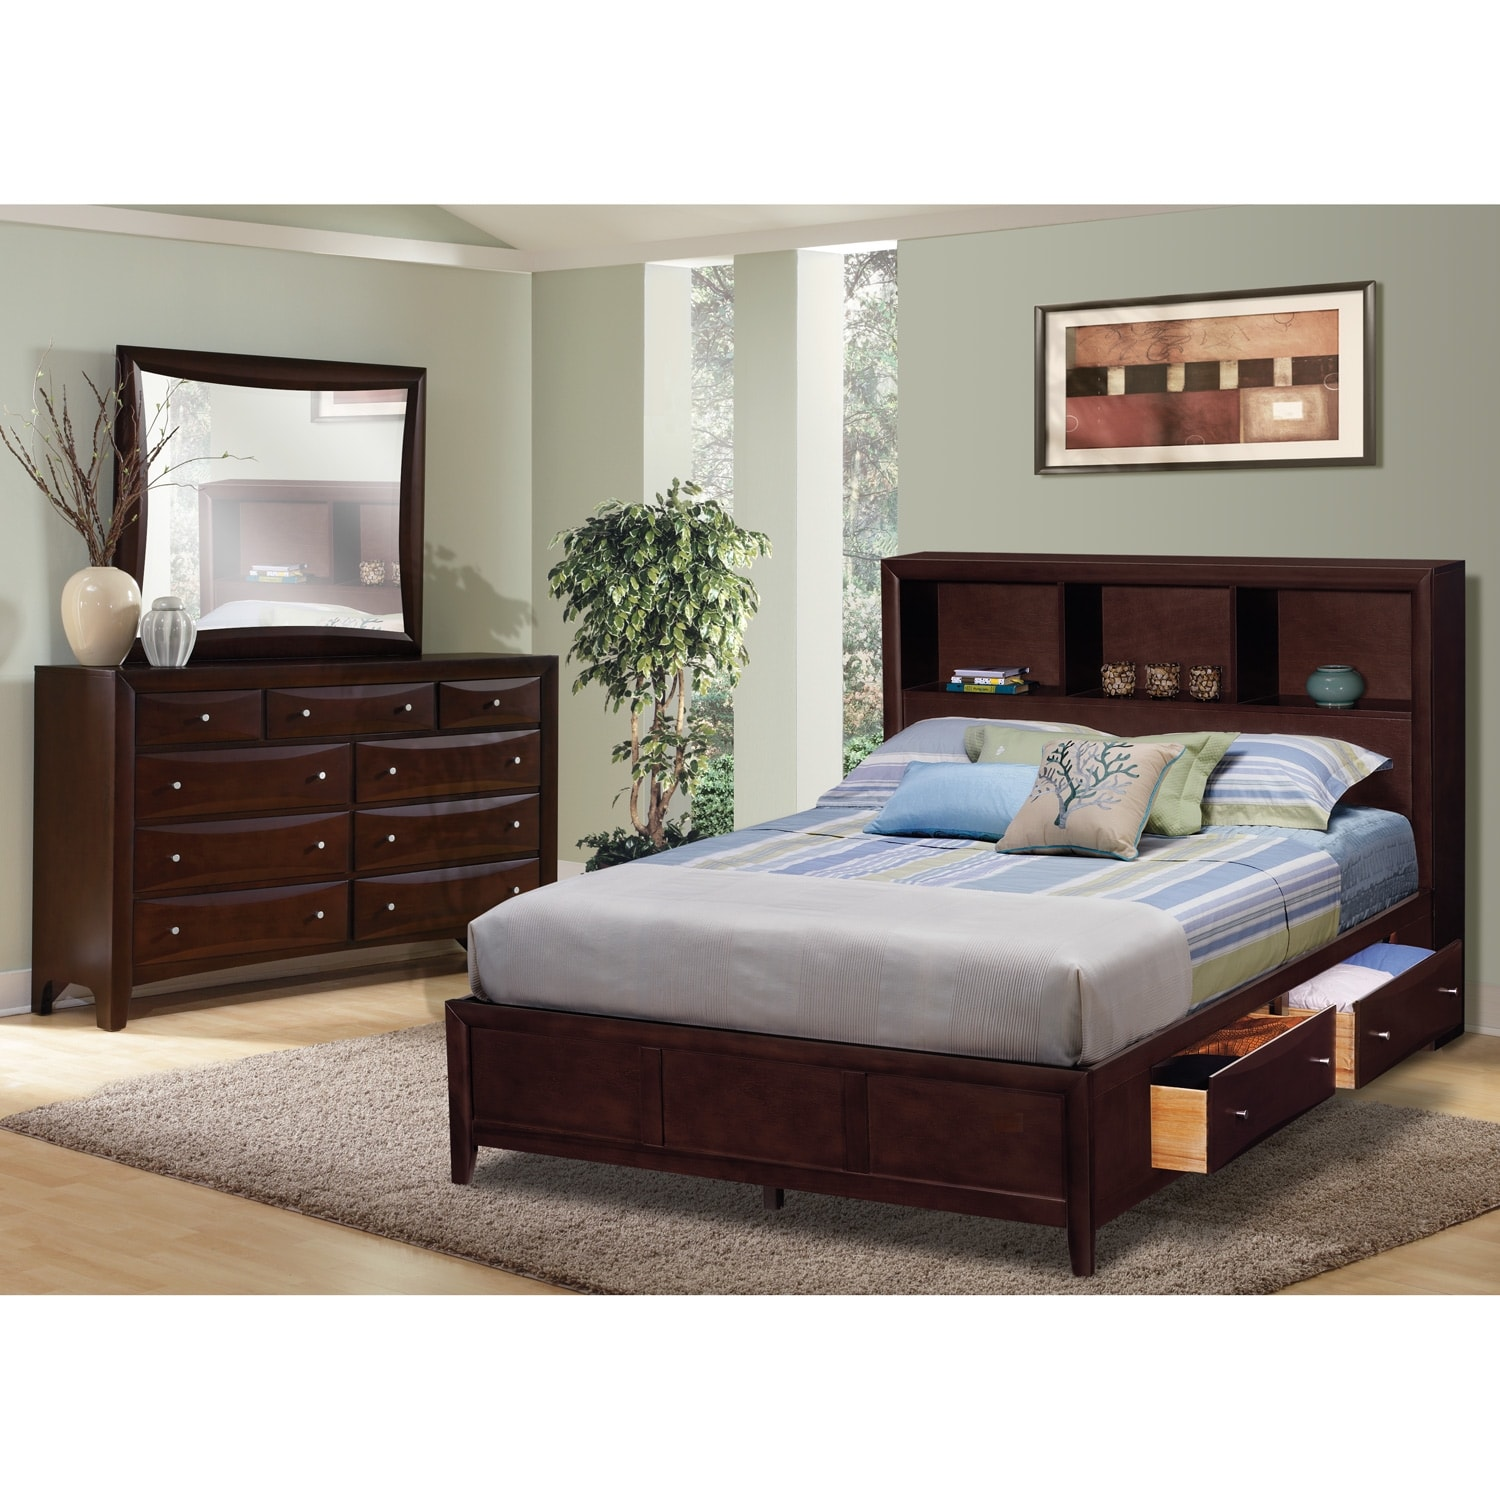 Clarion Bedroom 5 Pc King Wall Bedroom Value City Furniture